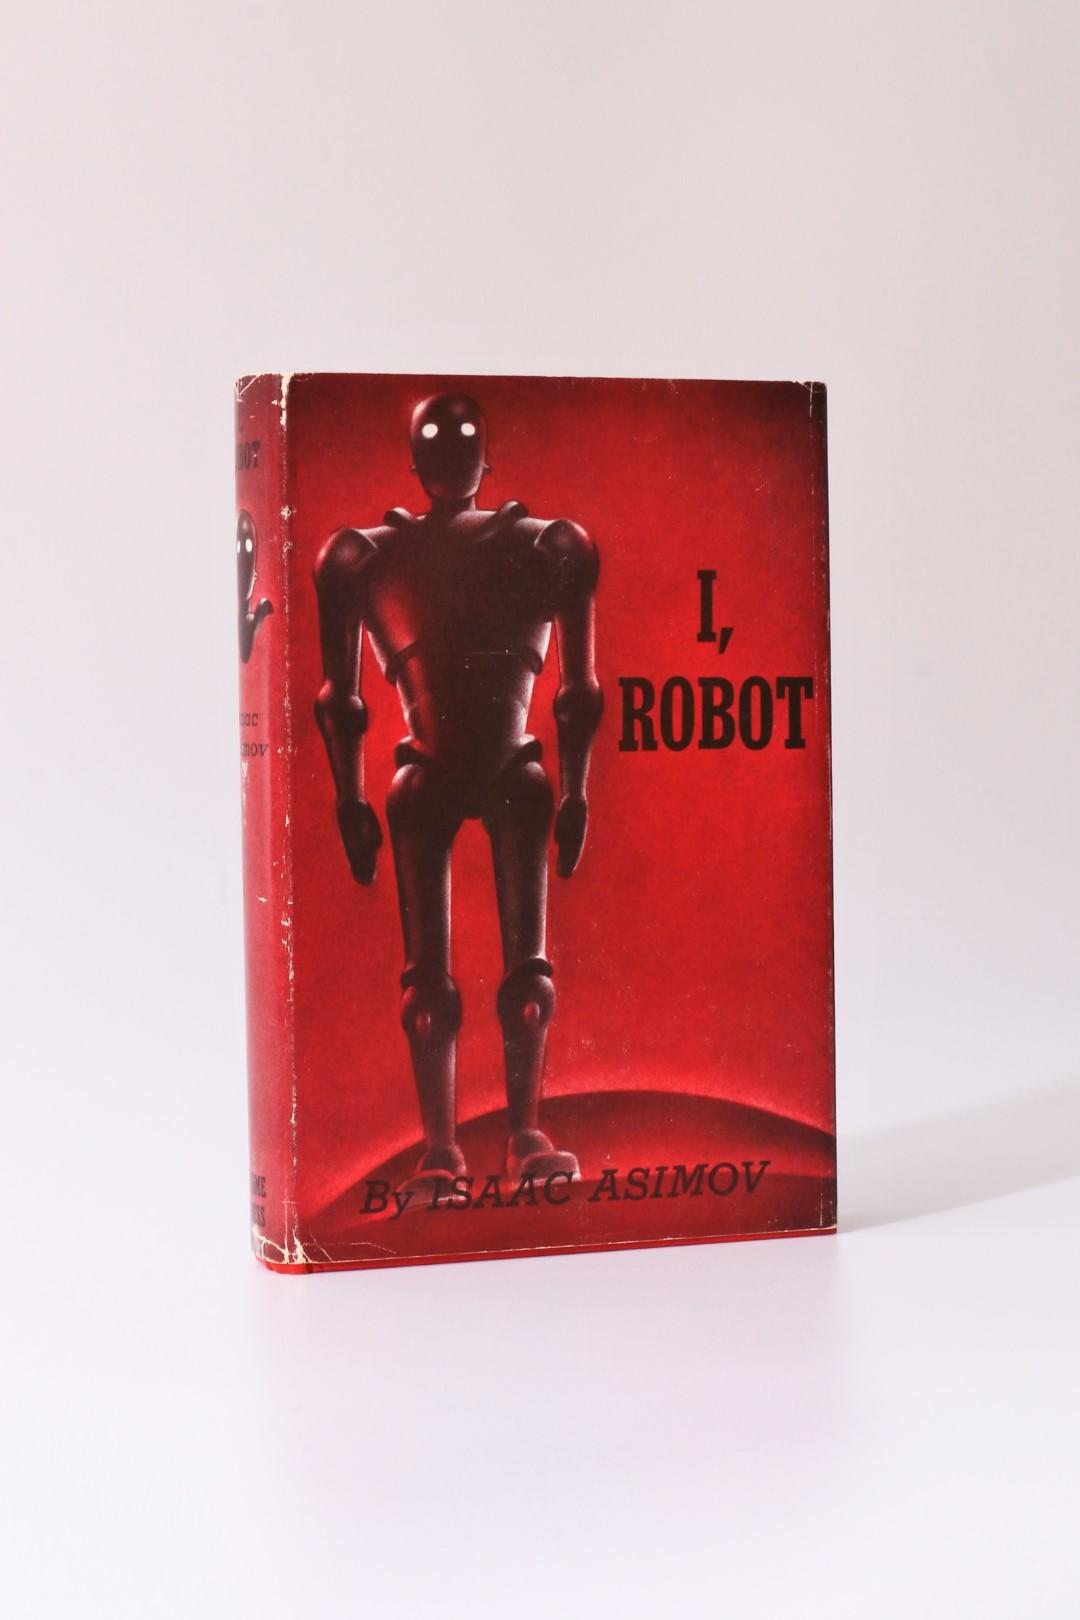 Isaac Asimov - I, Robot - Gnome Press, 1950, First Edition.